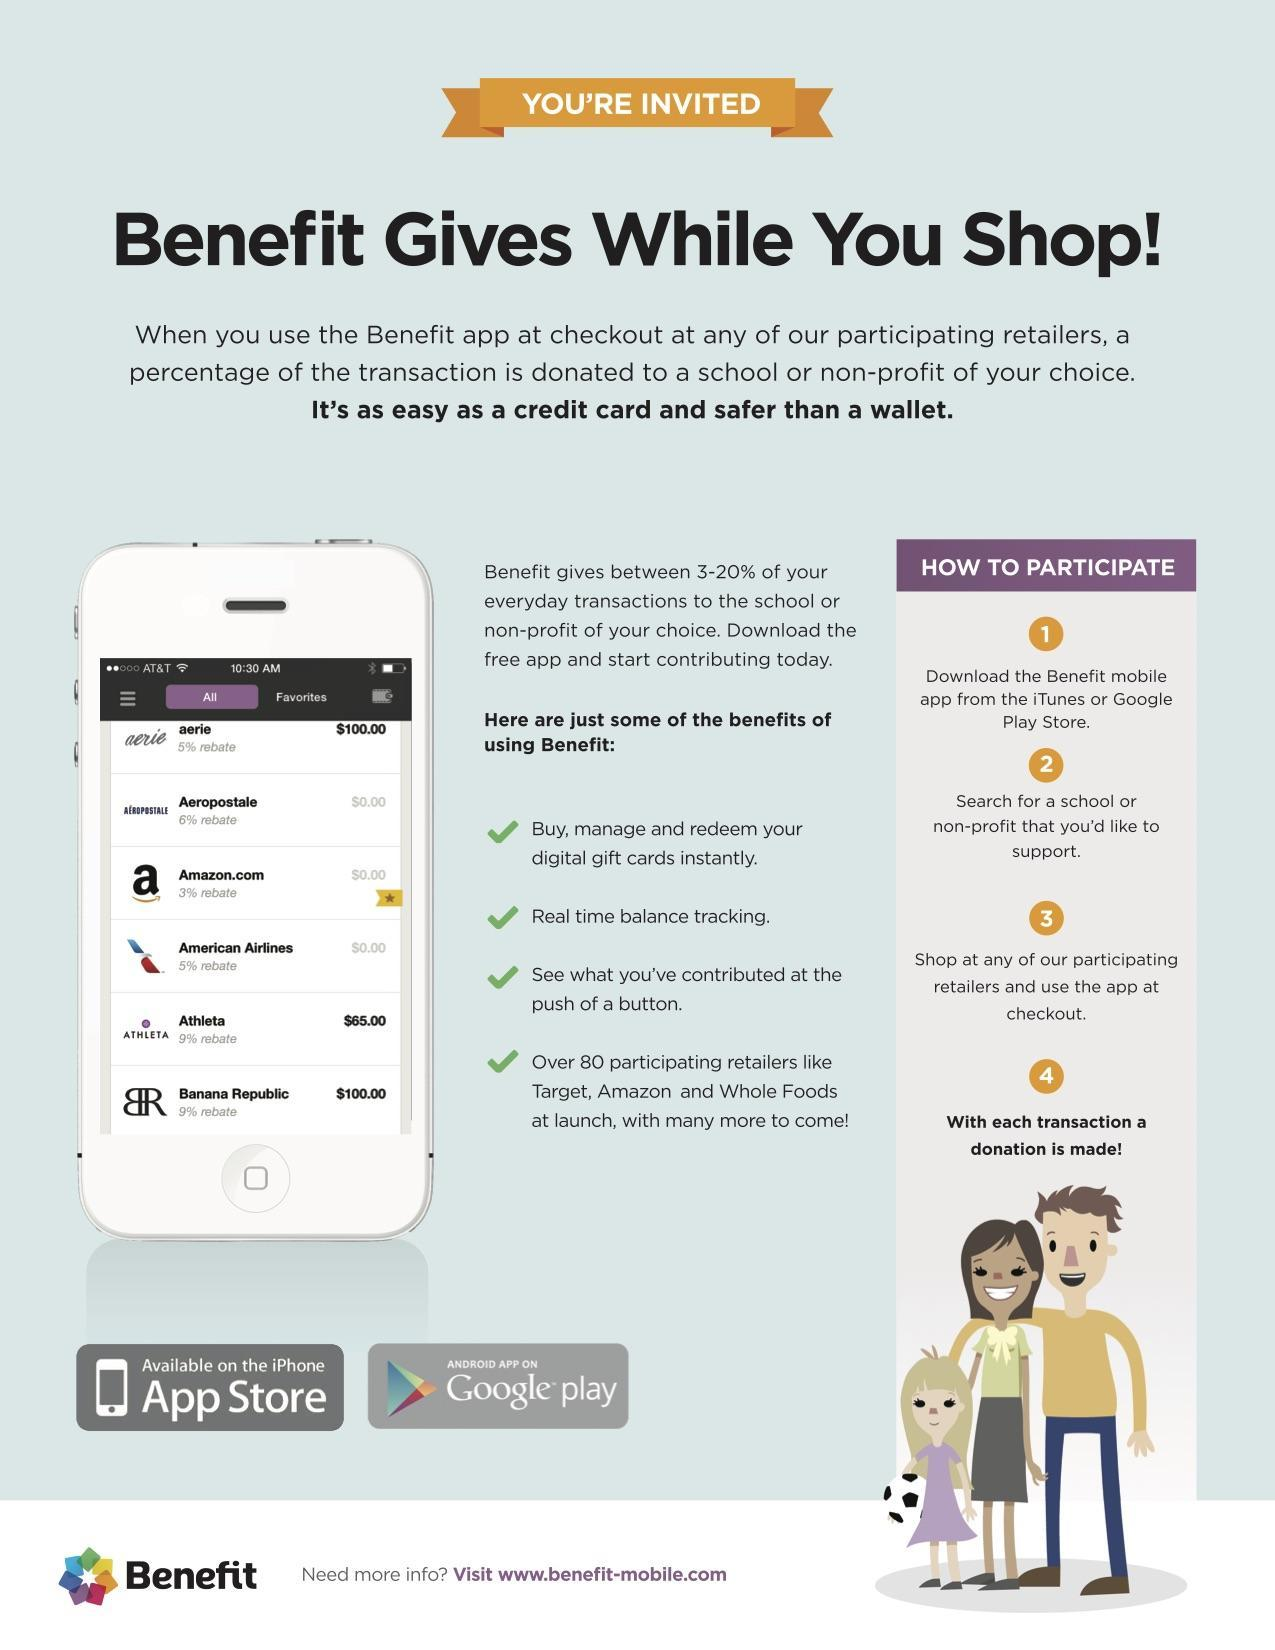 A picture and information for the Benefit Mobile Application.